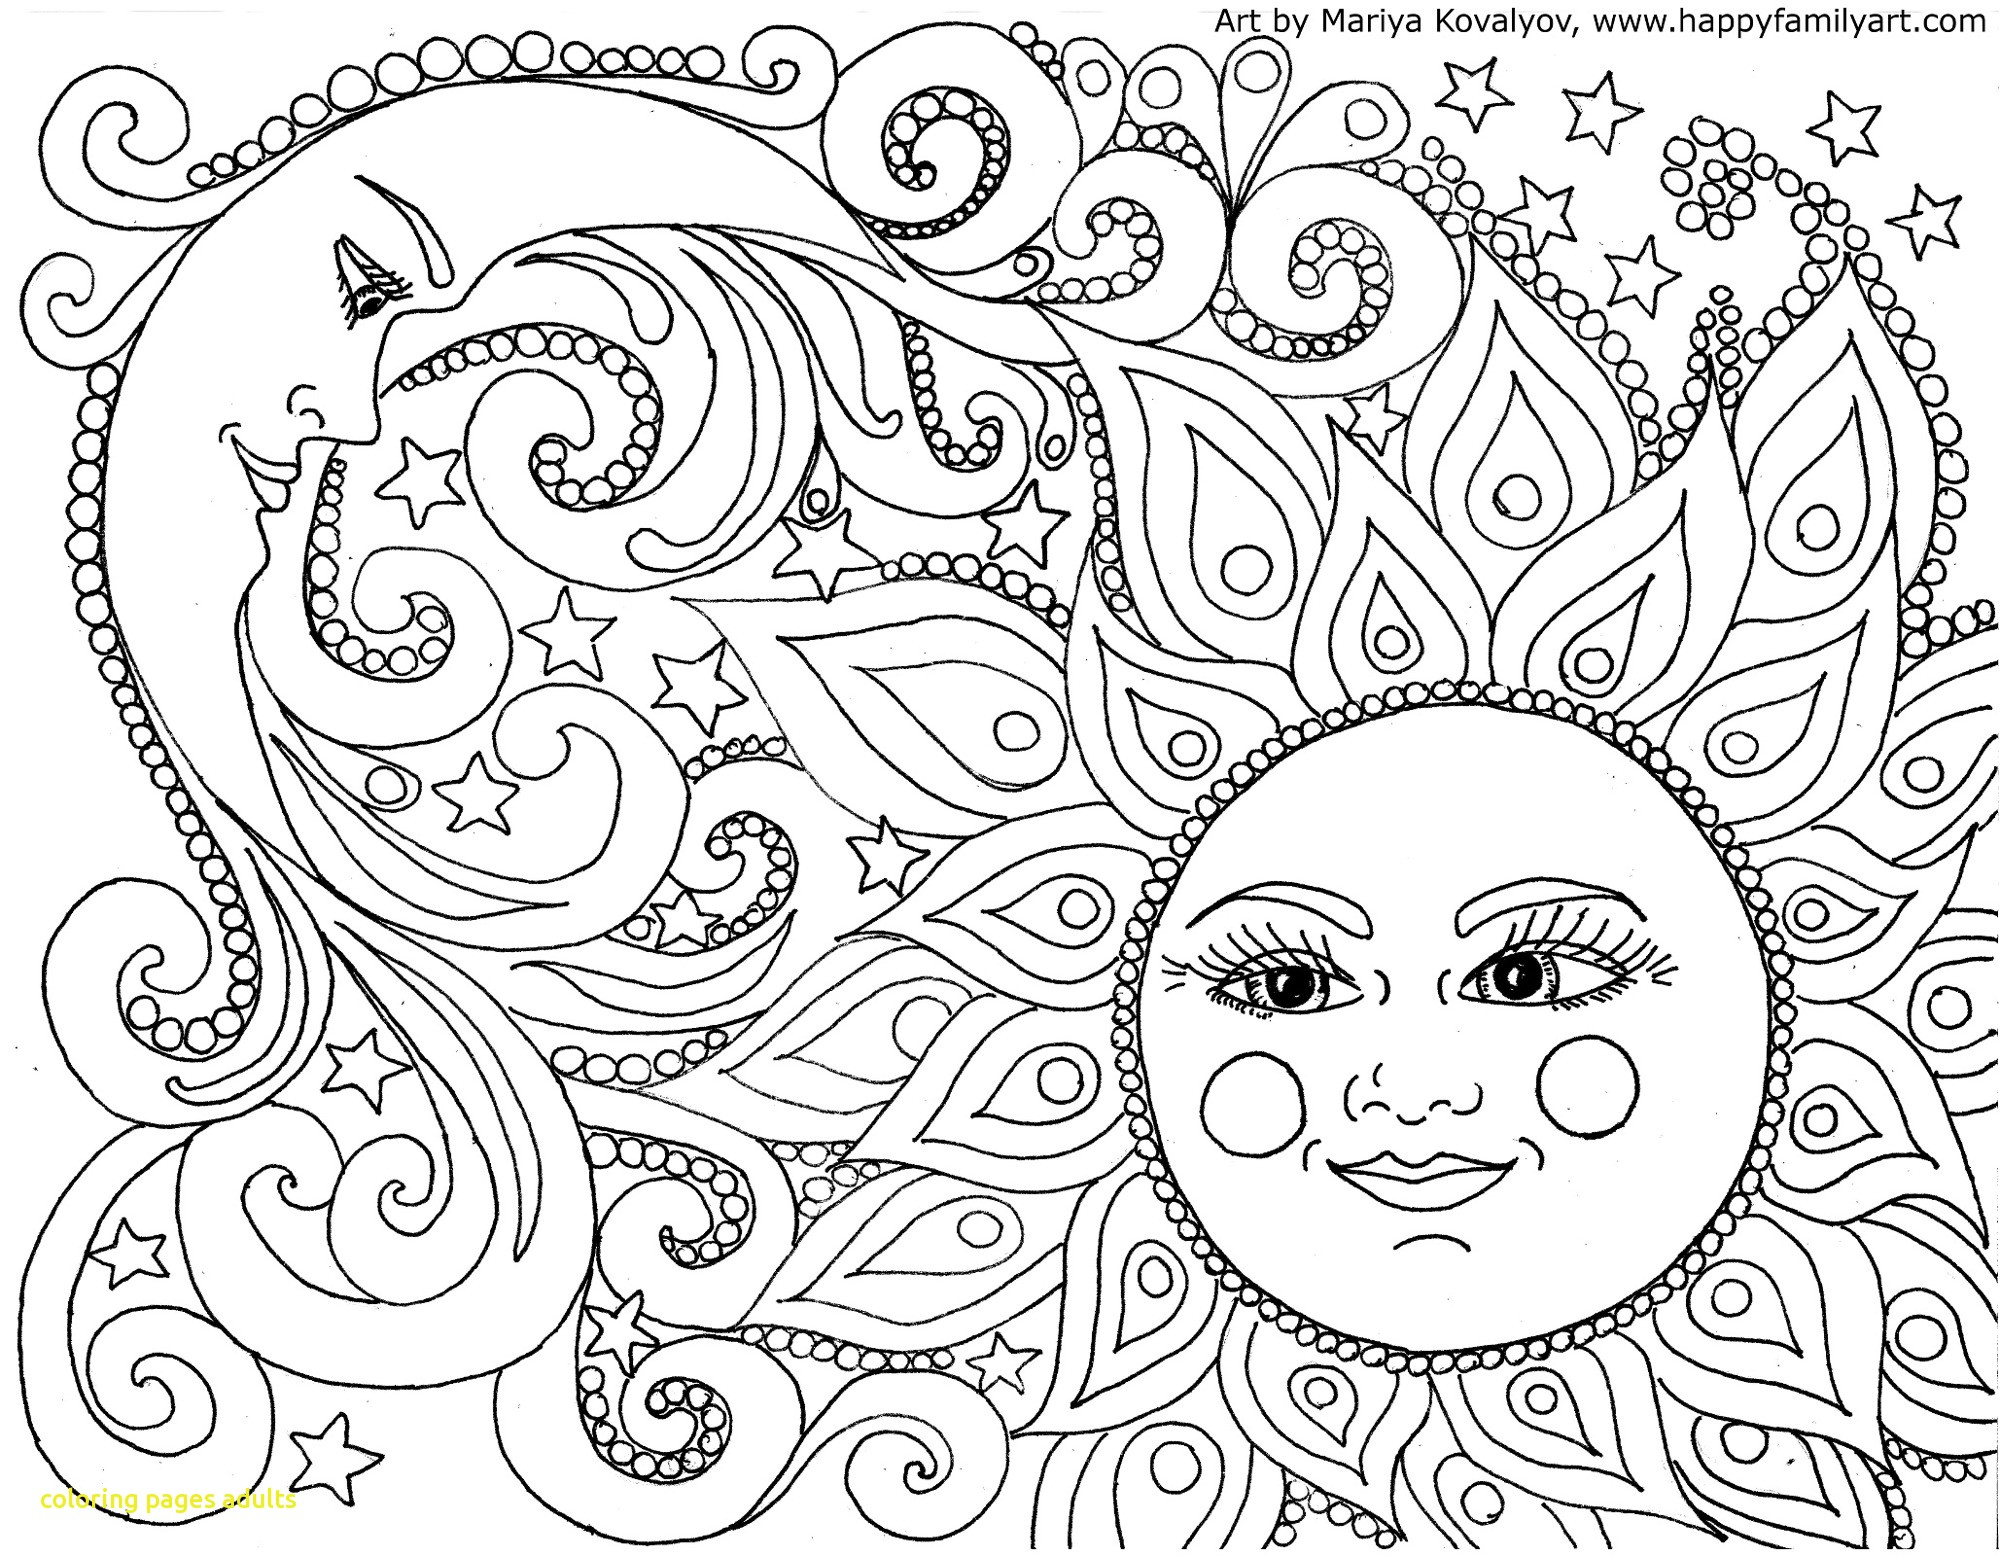 2000x1556 Coloring Pages Adults With Pdf Coloring Pages For Adult Pilular